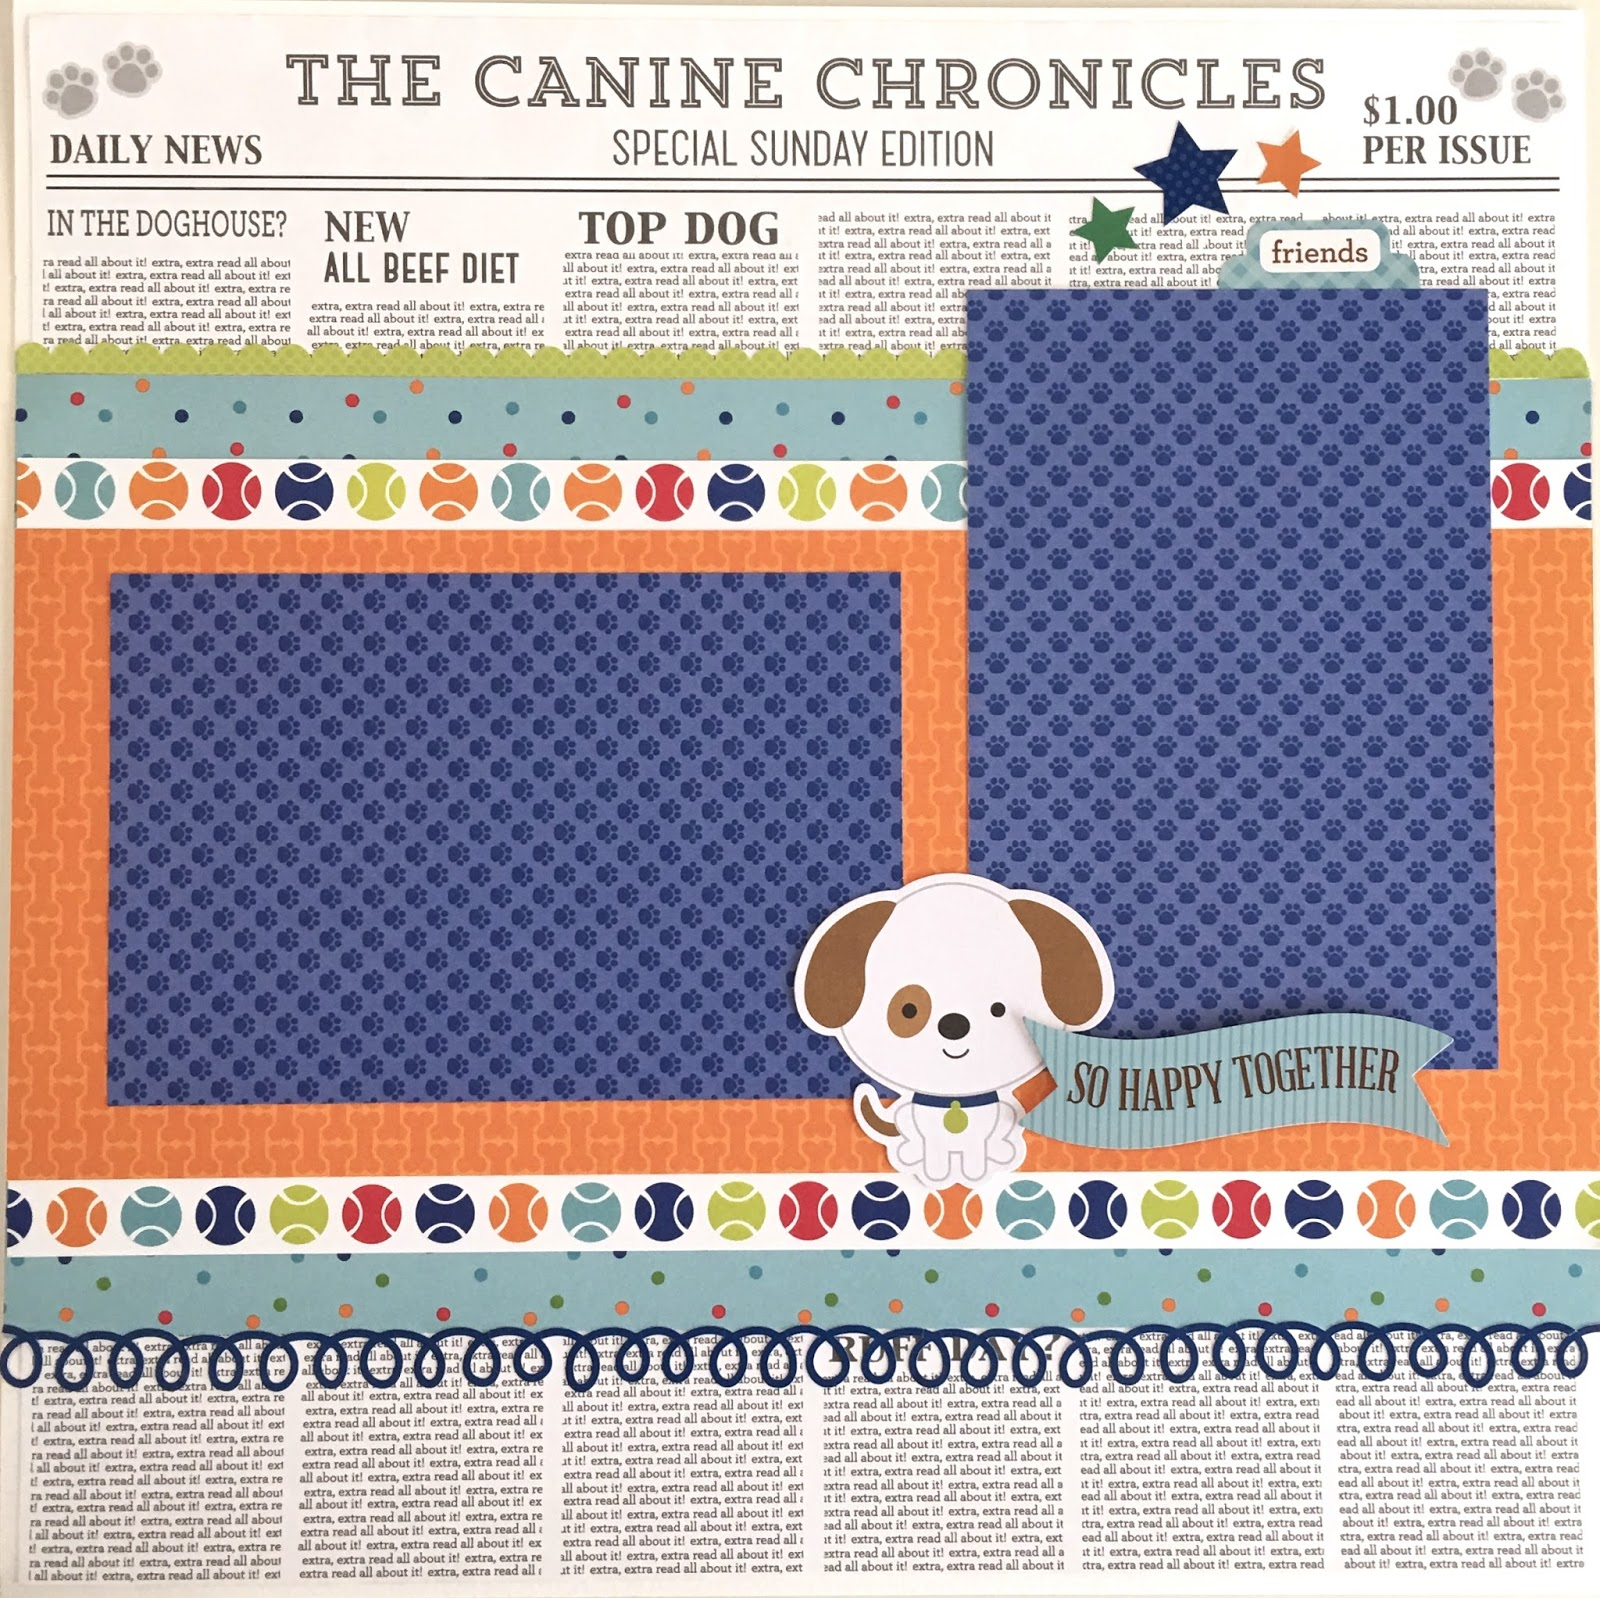 How to make scrapbook about yourself - This Is A Pre Cut Do It Yourself Scrapbook Kit That Includes All Of The Materials To Make Six 12x12 Dog Themed Scrapbook Pages Also Available Pre Made